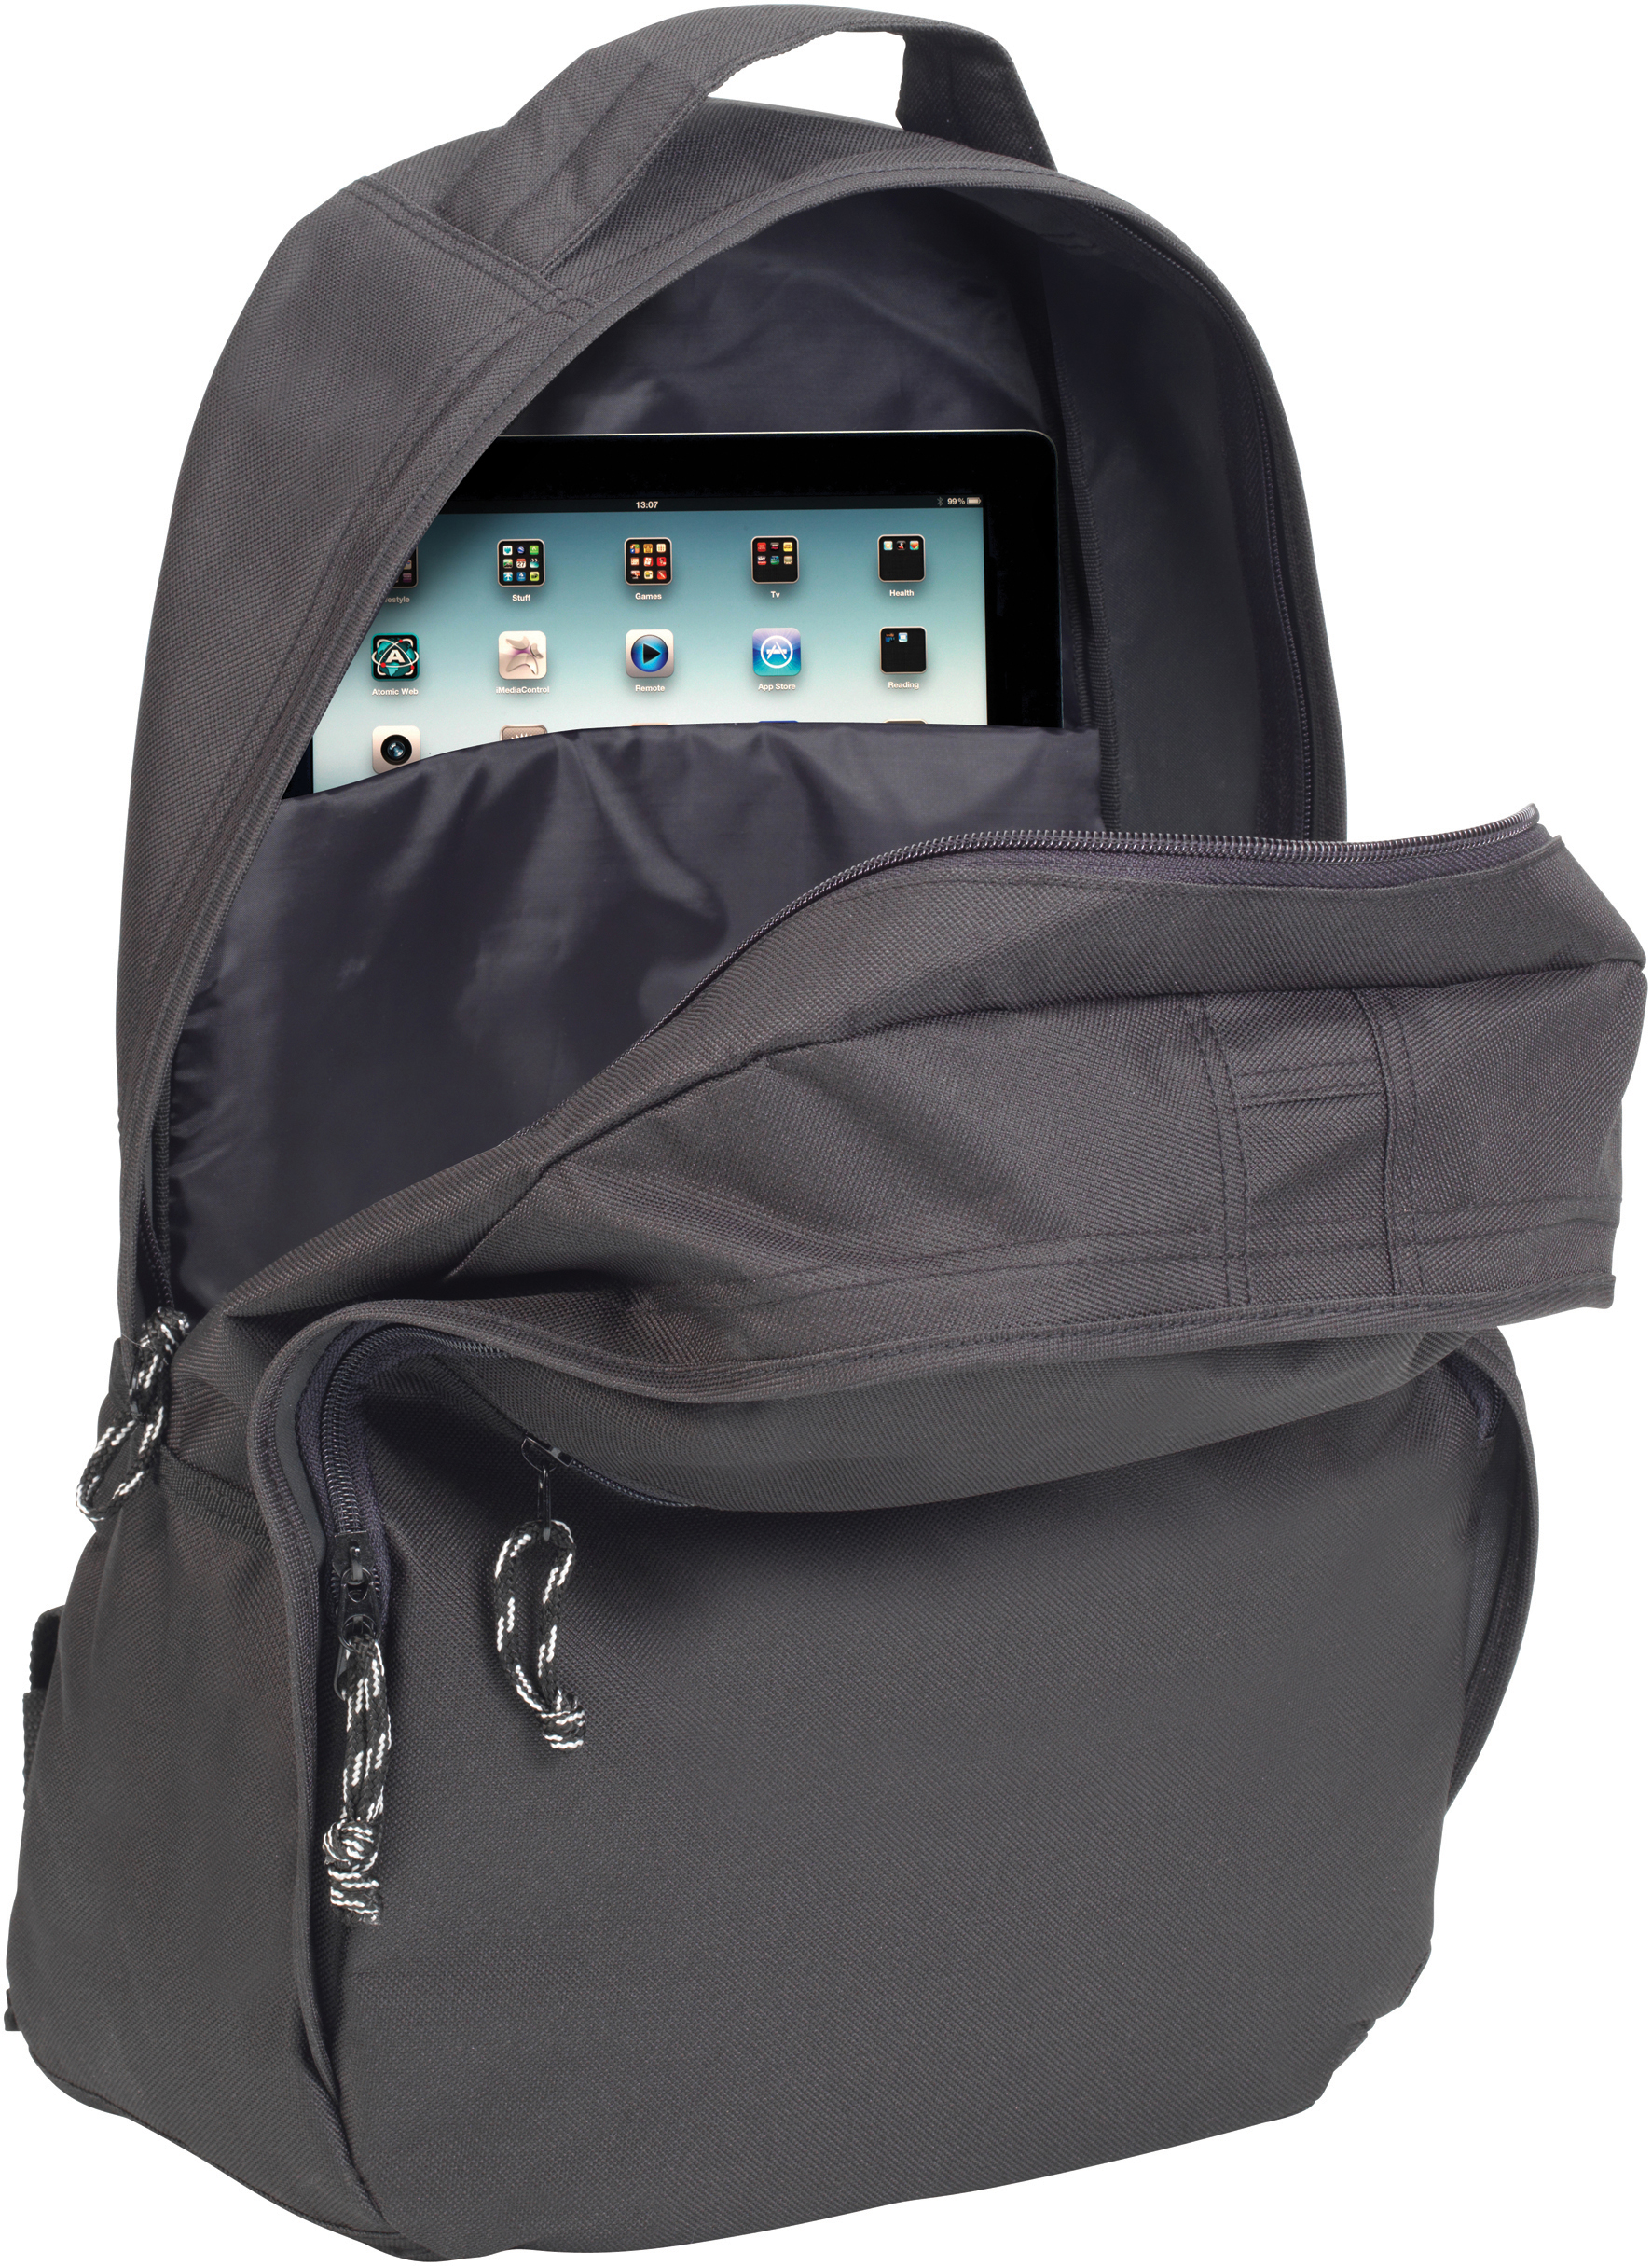 Promotional Higham Business Backpack